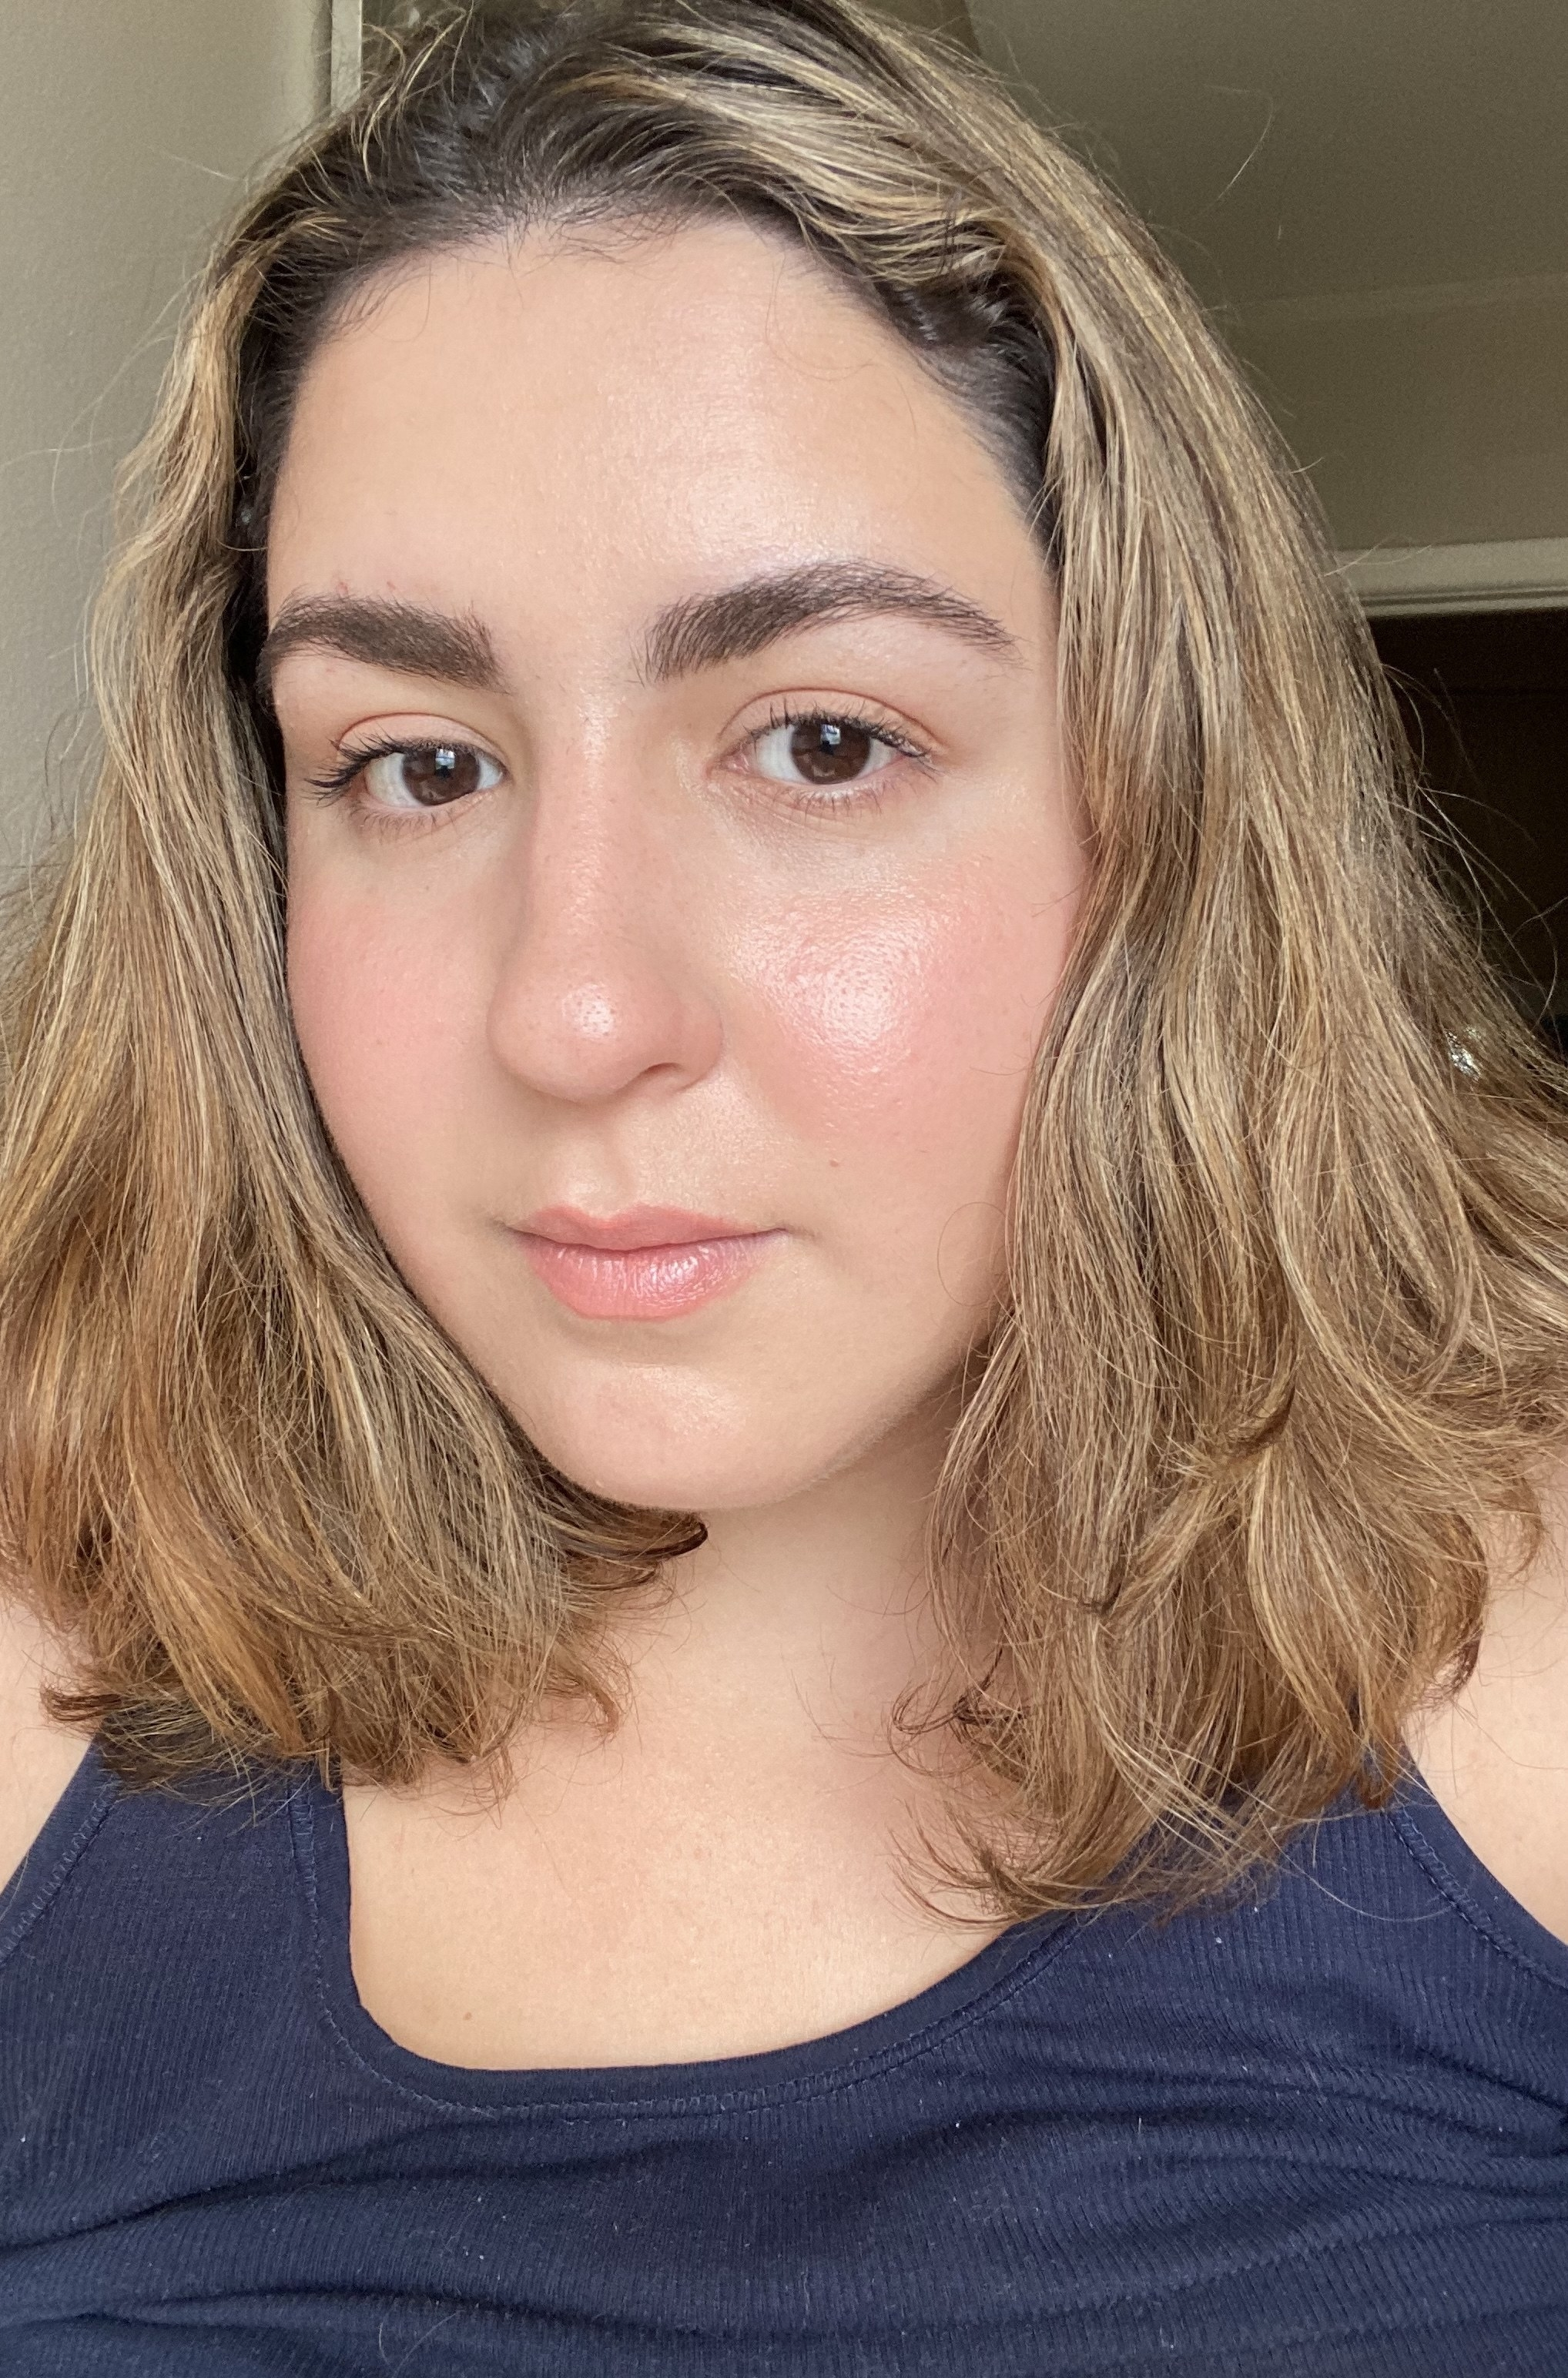 the writer's wavy hair looking nice and smooth after an Olaplex treatment